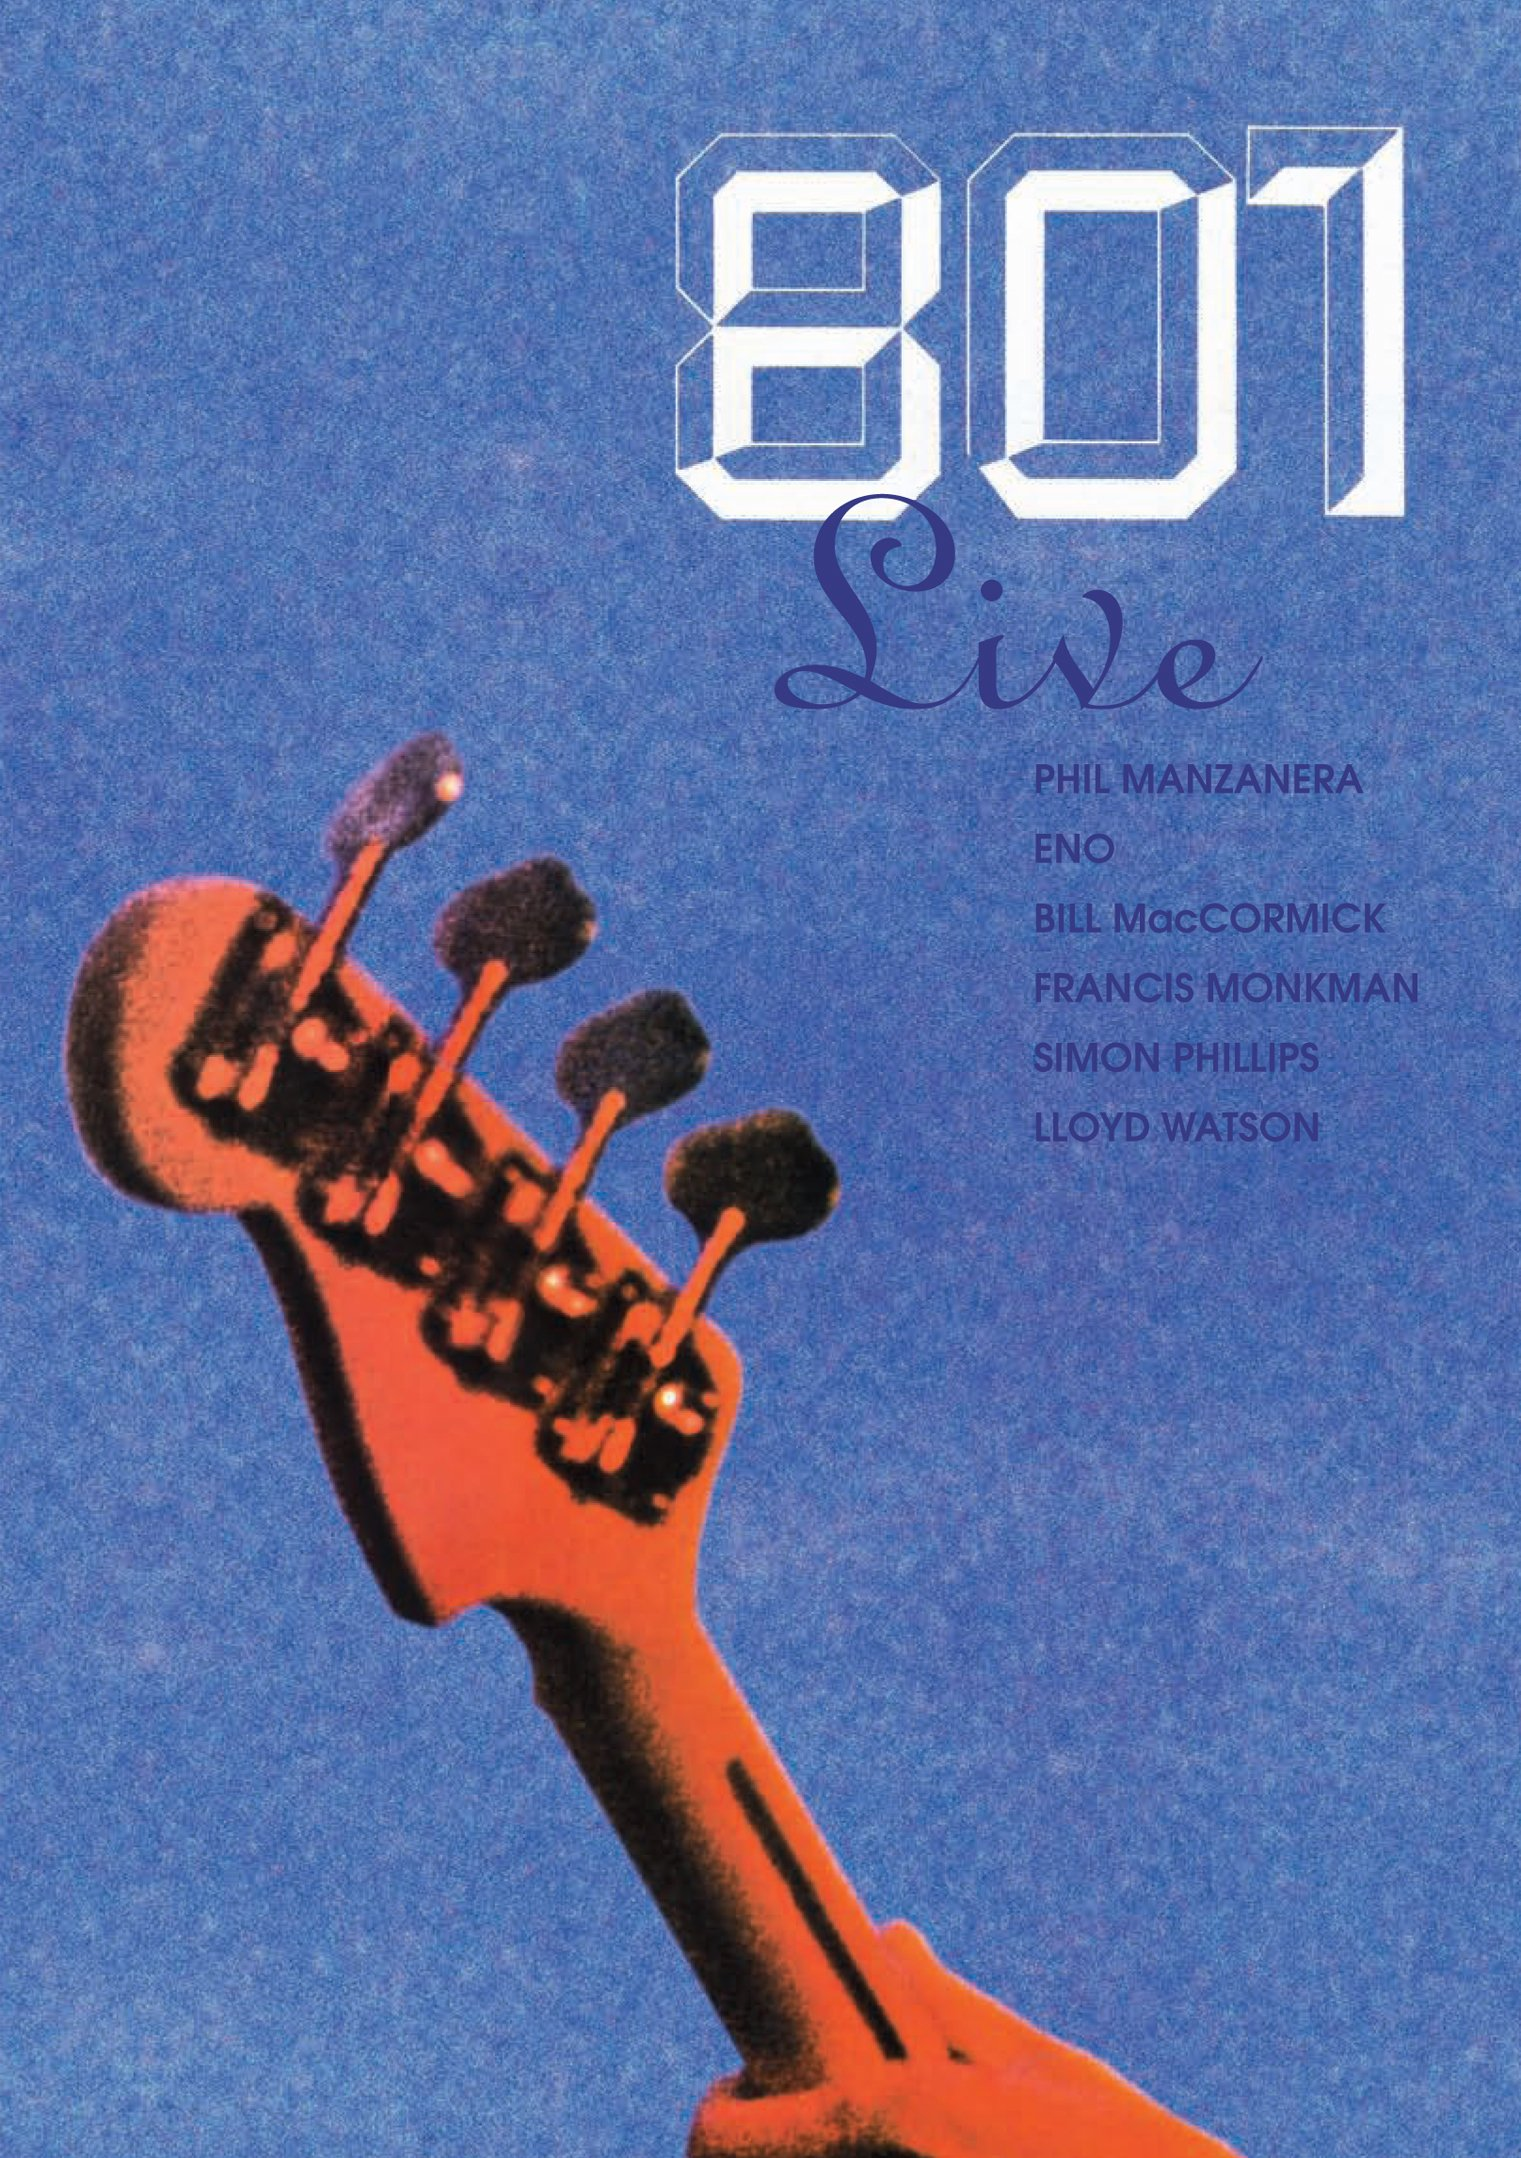 801 Live (Collector's Edition)